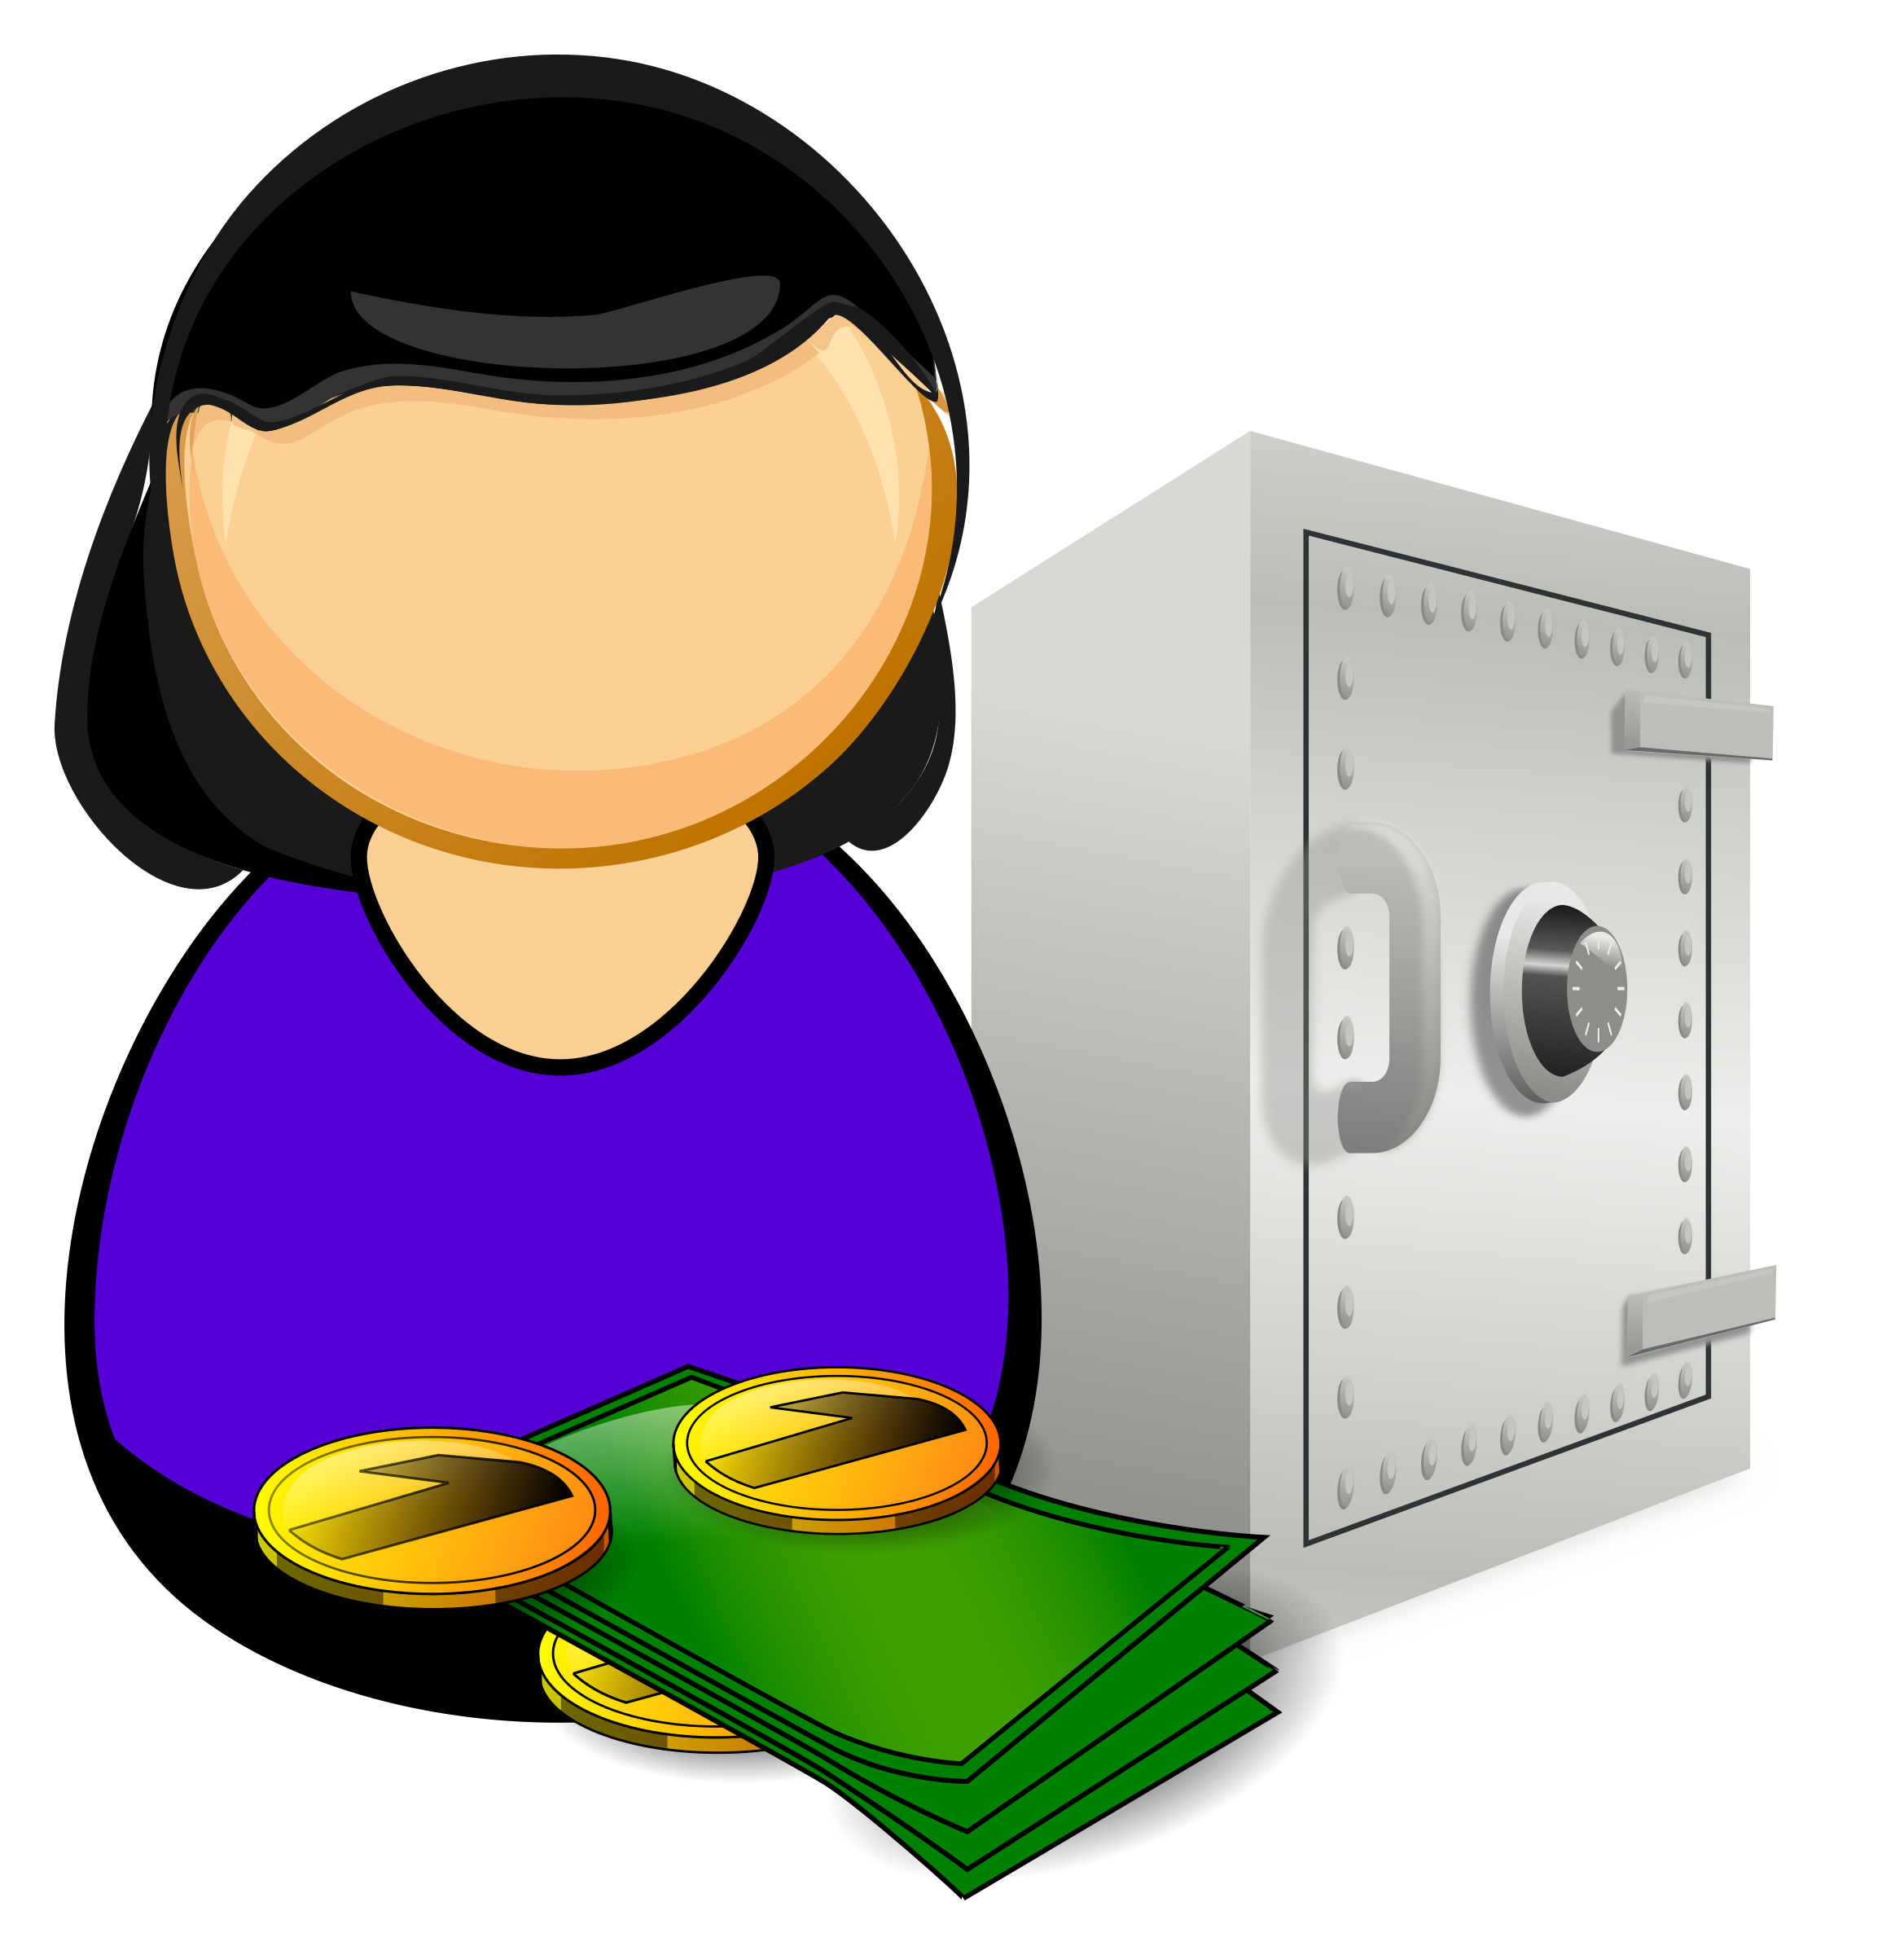 clipart Accountant clipart. Bank officer big image